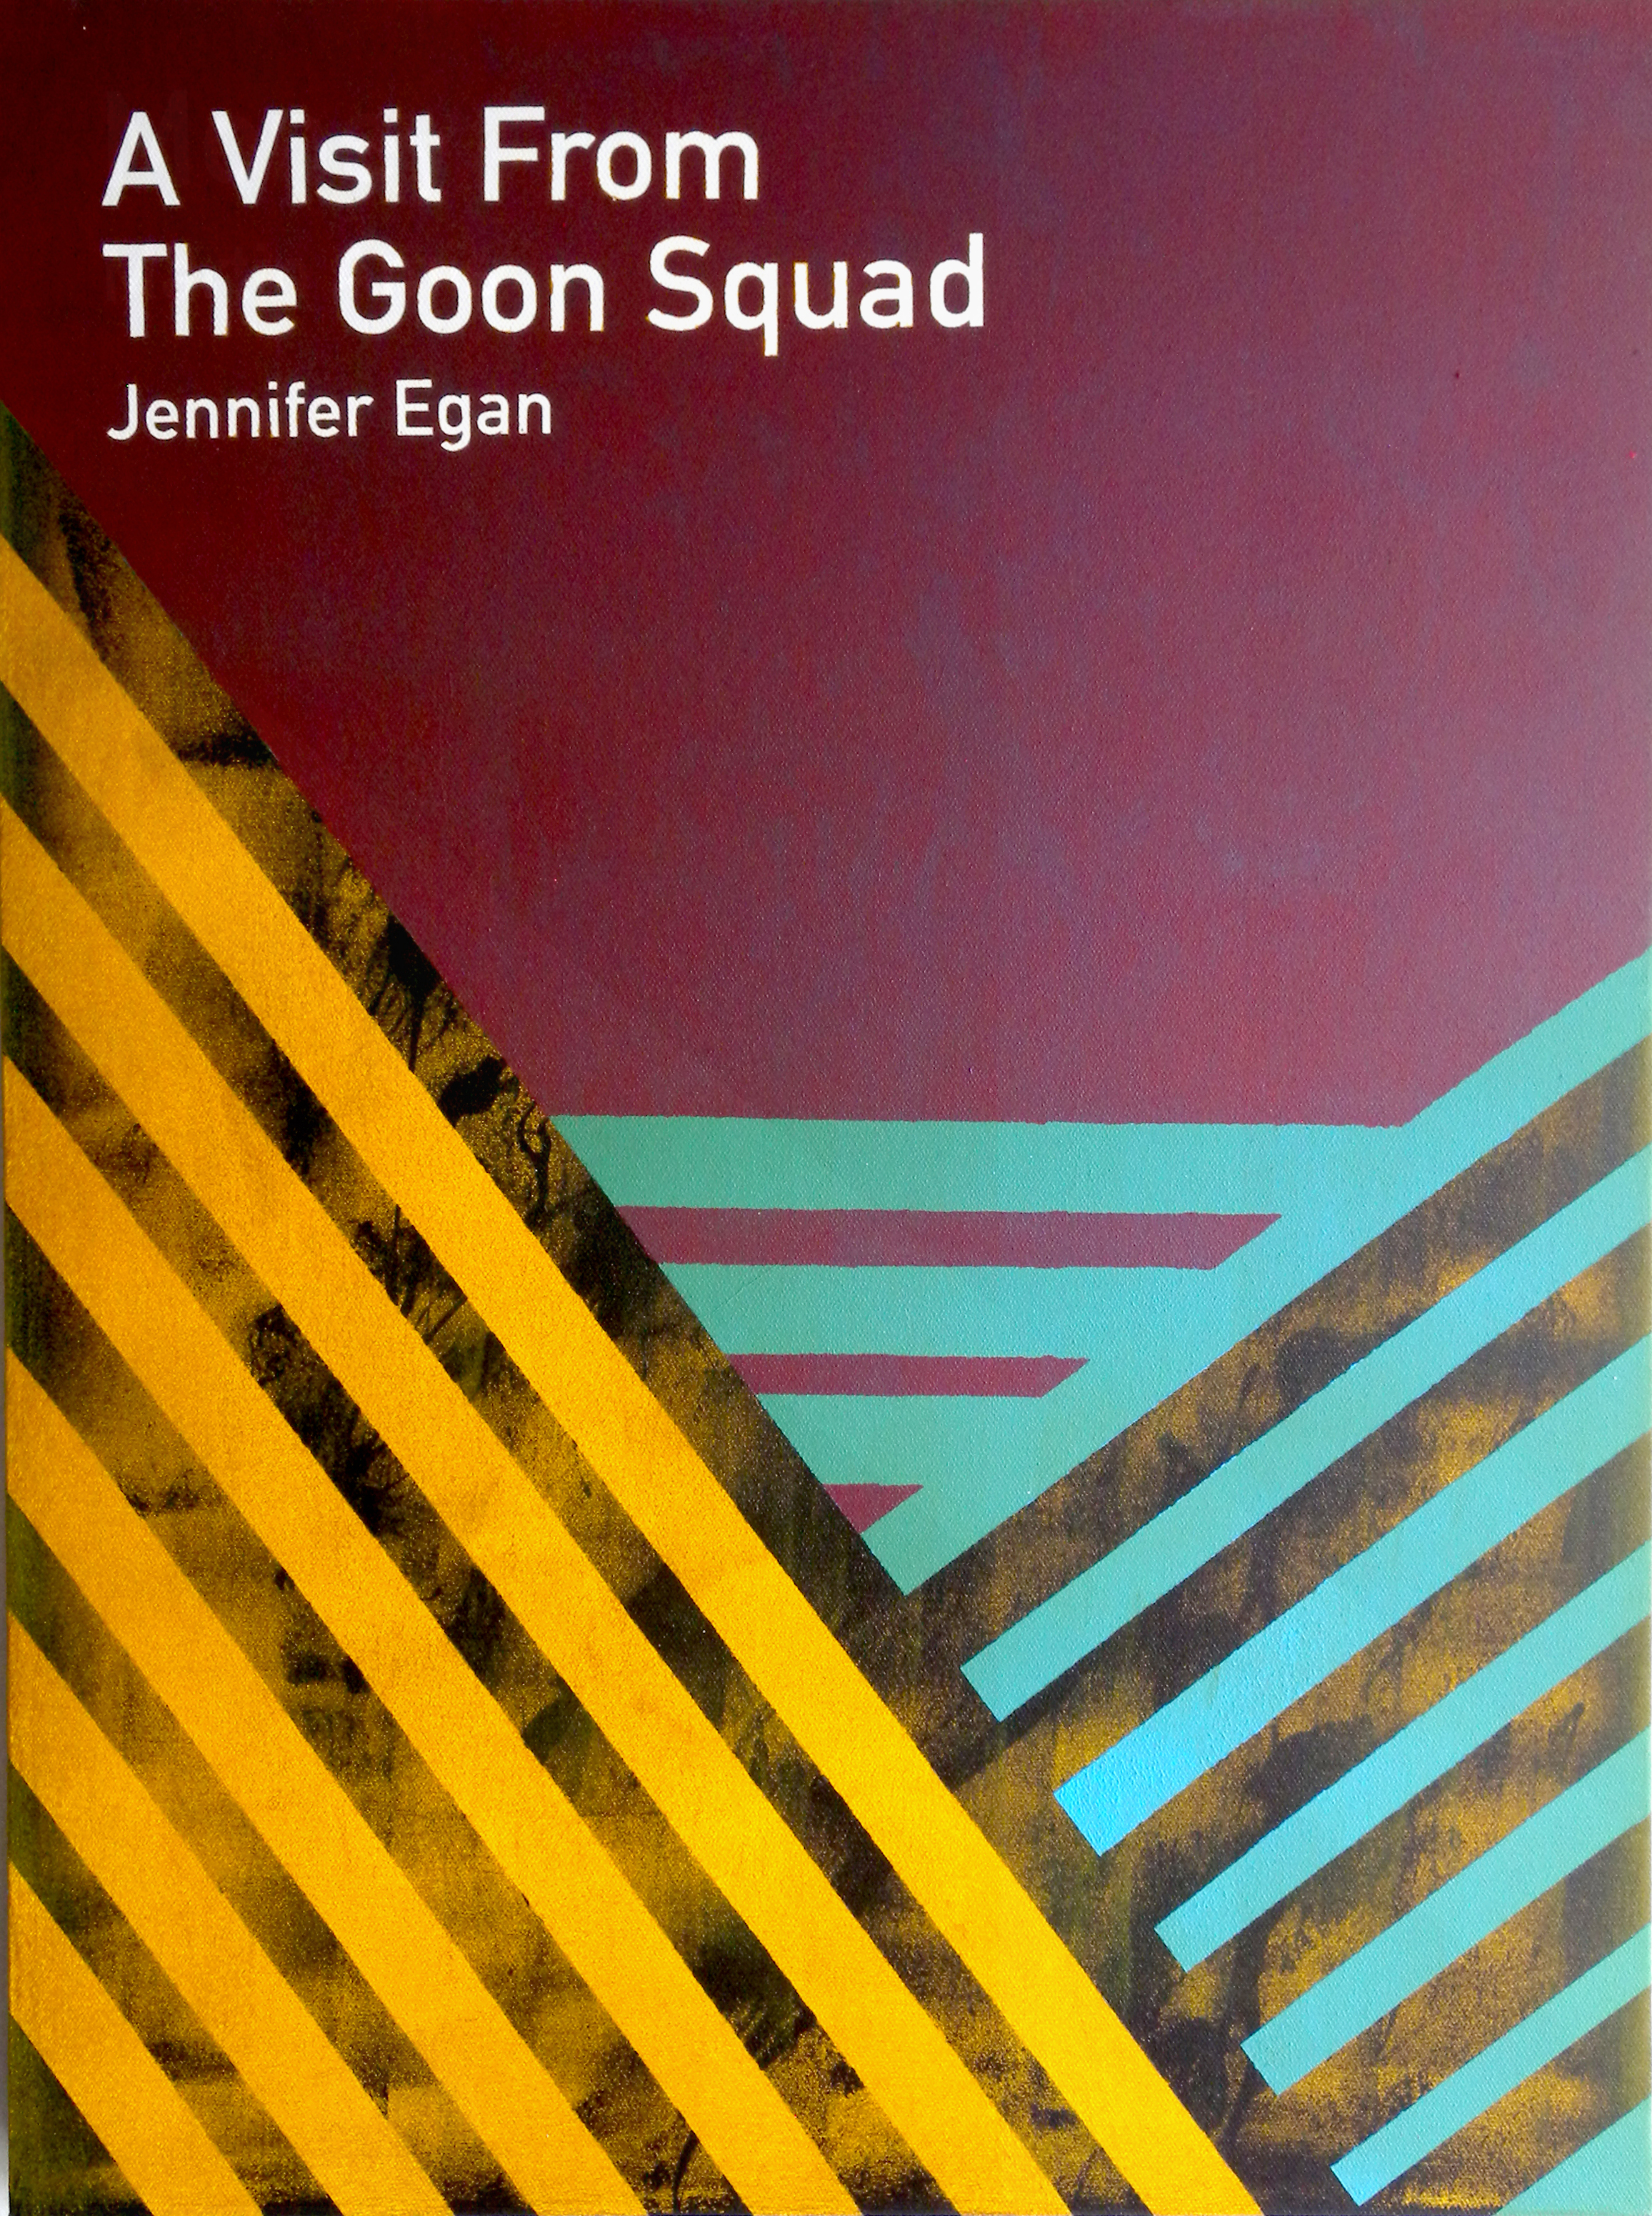 A Visit from The Goon Squad / Jennifer Egan  2013 Acrylic on canvas 46 x 61 x 3.5 cm